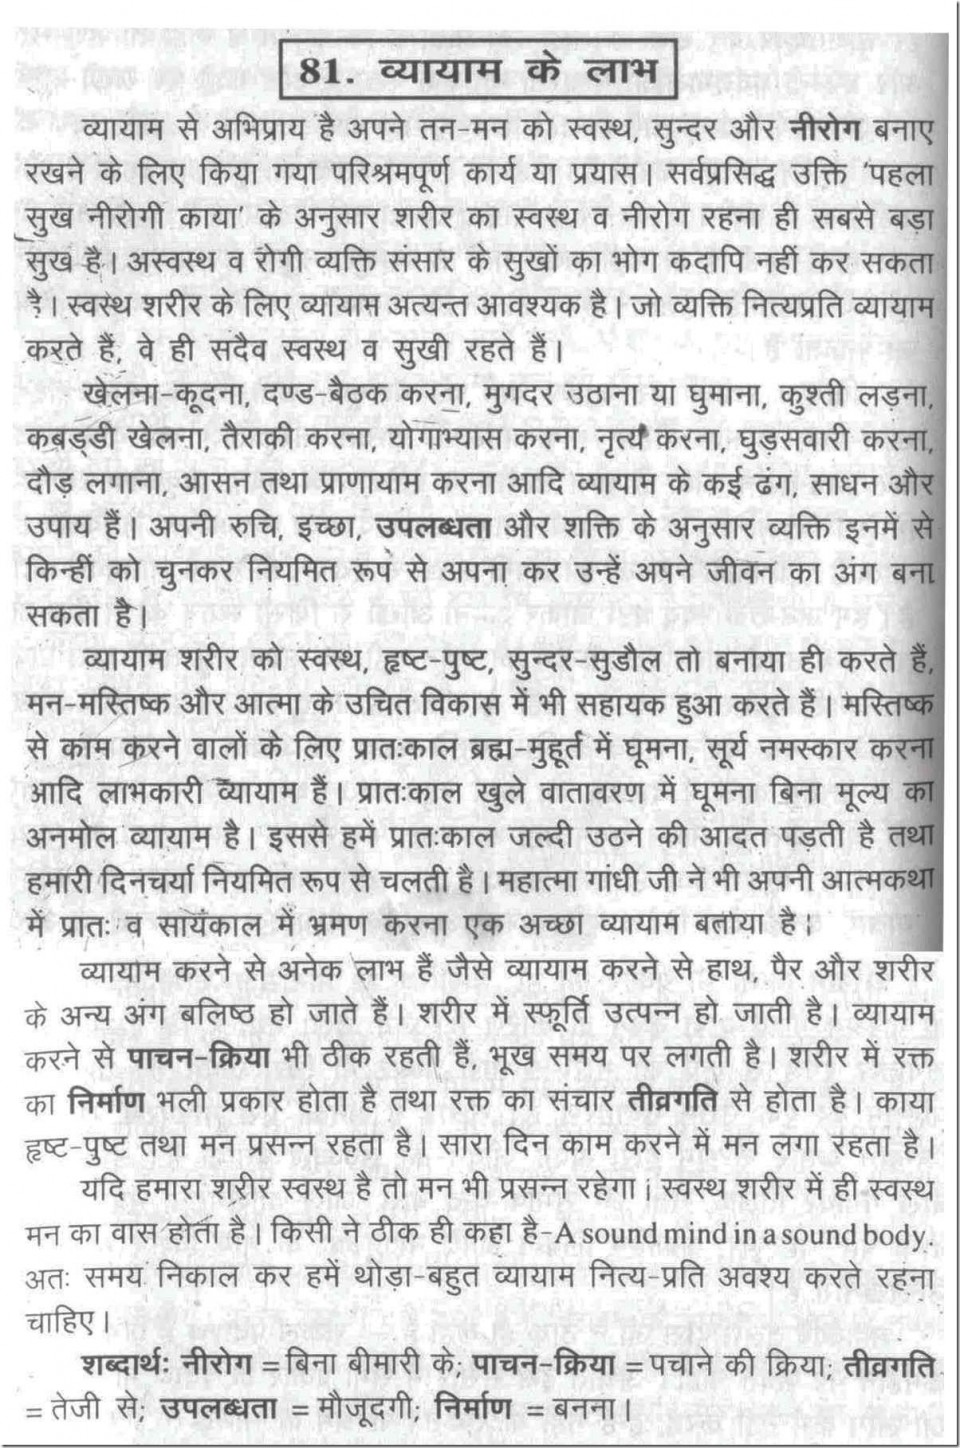 011 2563478896 Essay On Health And Fitness Through Food Good Habits In Hindi Exceptional Wikipedia 960